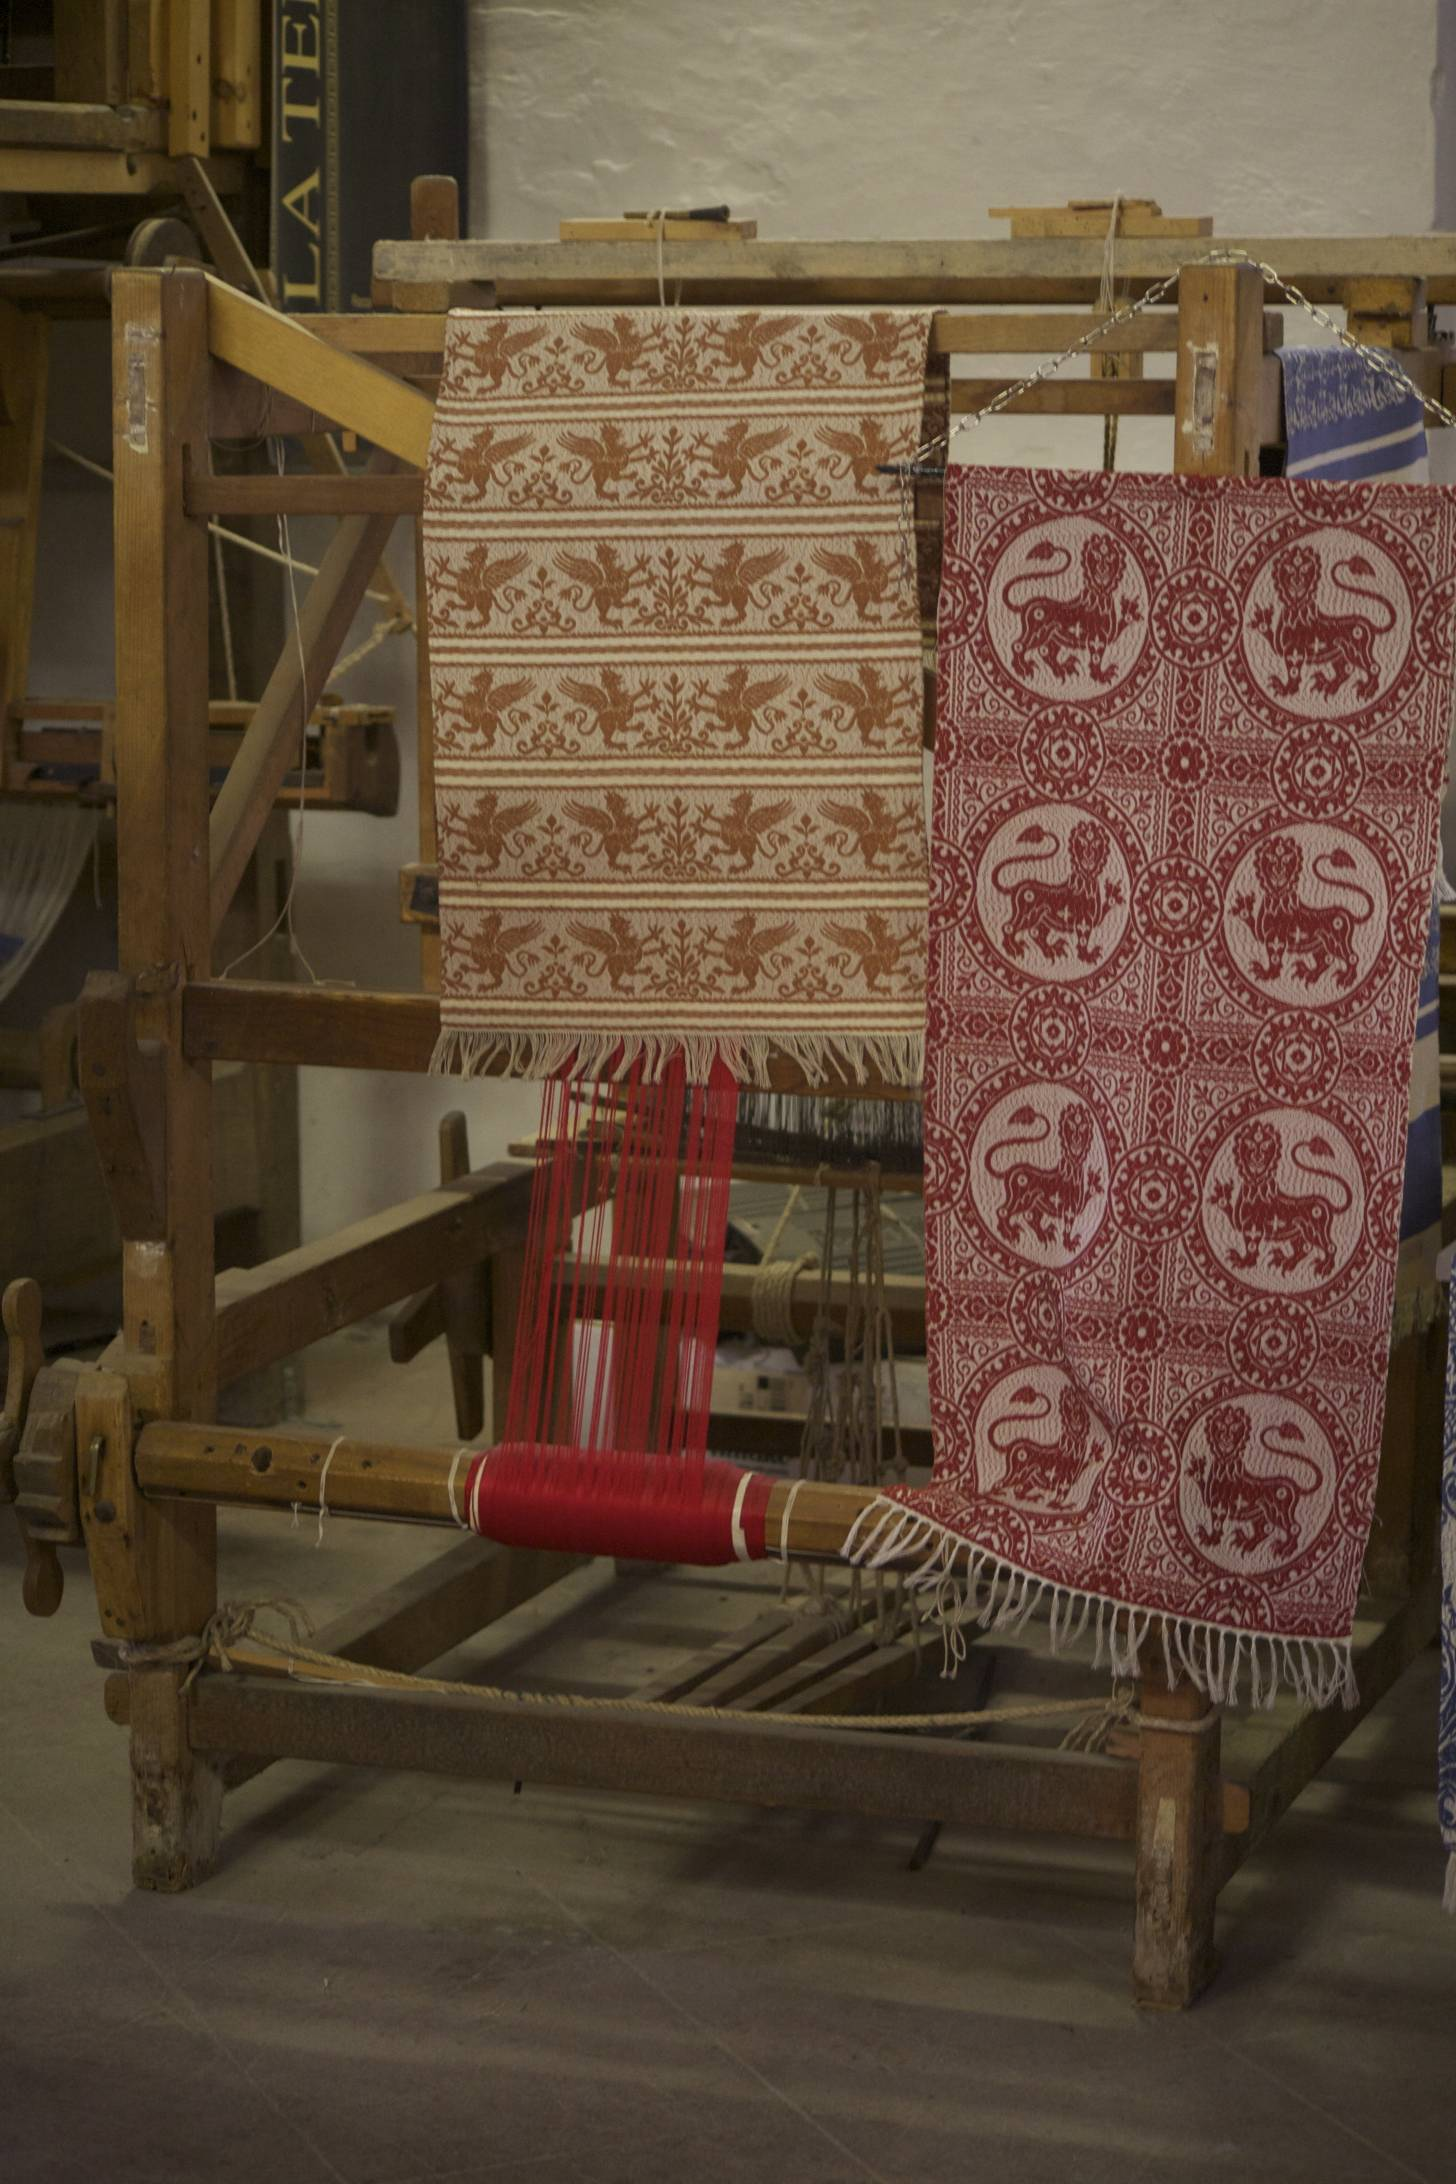 Tour a traditional textile maker in an old church.